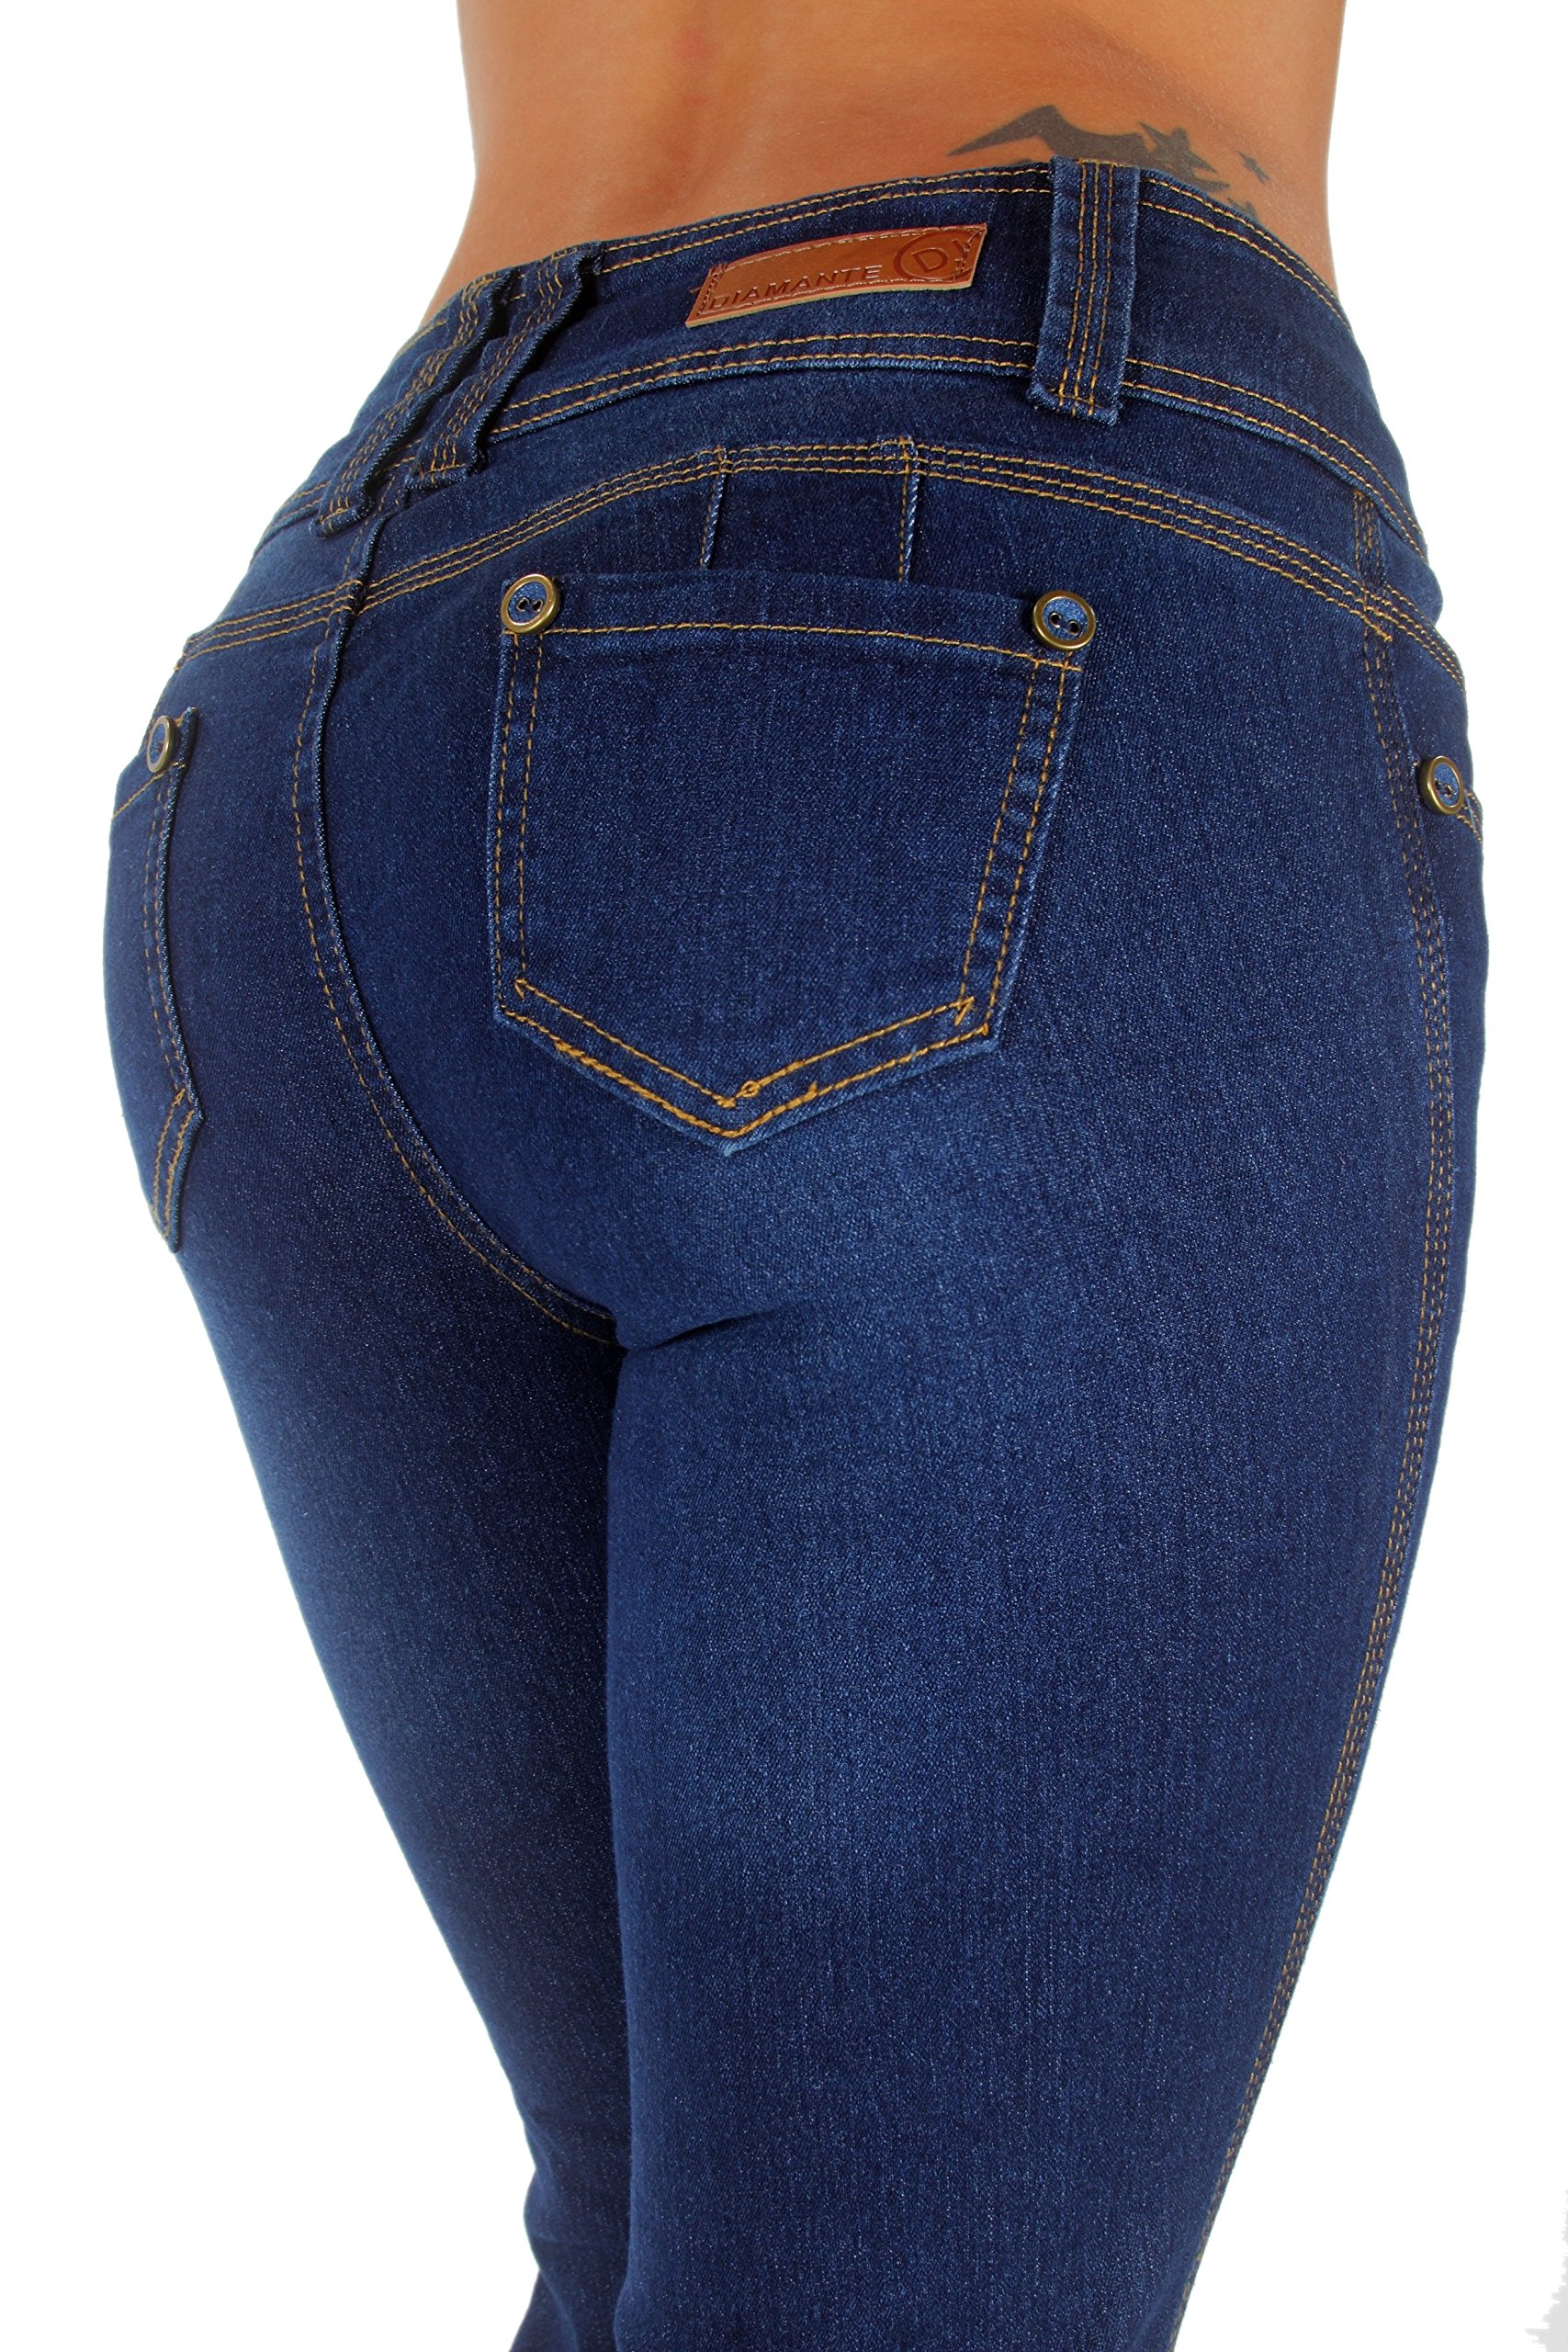 Style B925I1 – Colombian Design, Mid Waist, Butt Lift, Boot Leg Jeans in Dark Blue Size 7